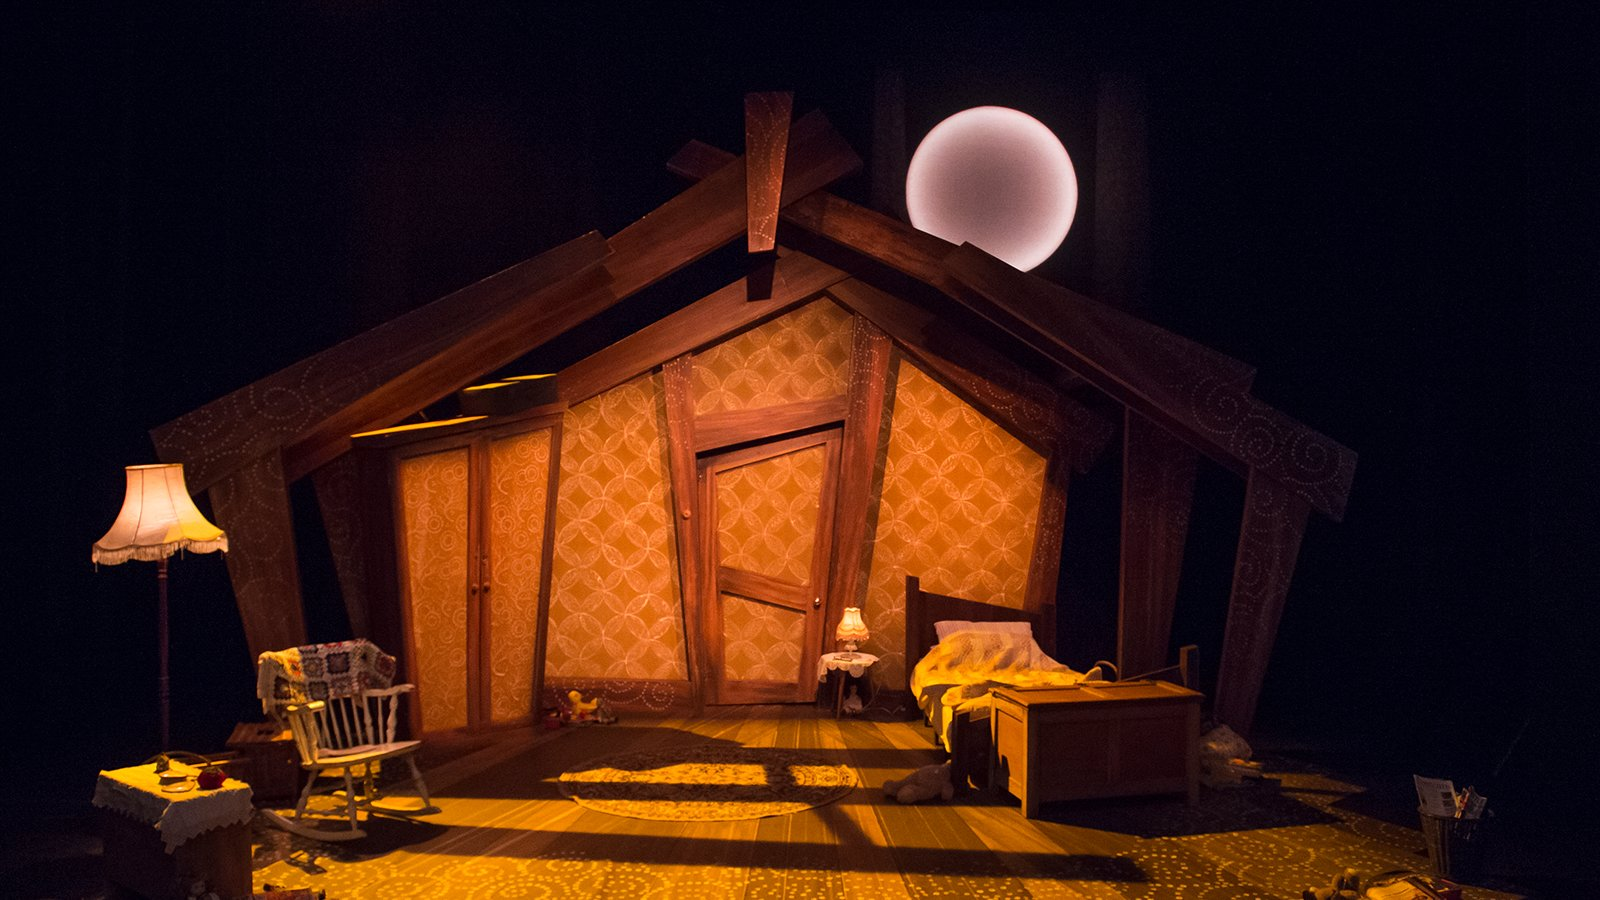 Photo of set design of Little Red Riding Hood, with a cozy home's interior, with bed, rocking char, wardrobe and floor lamp